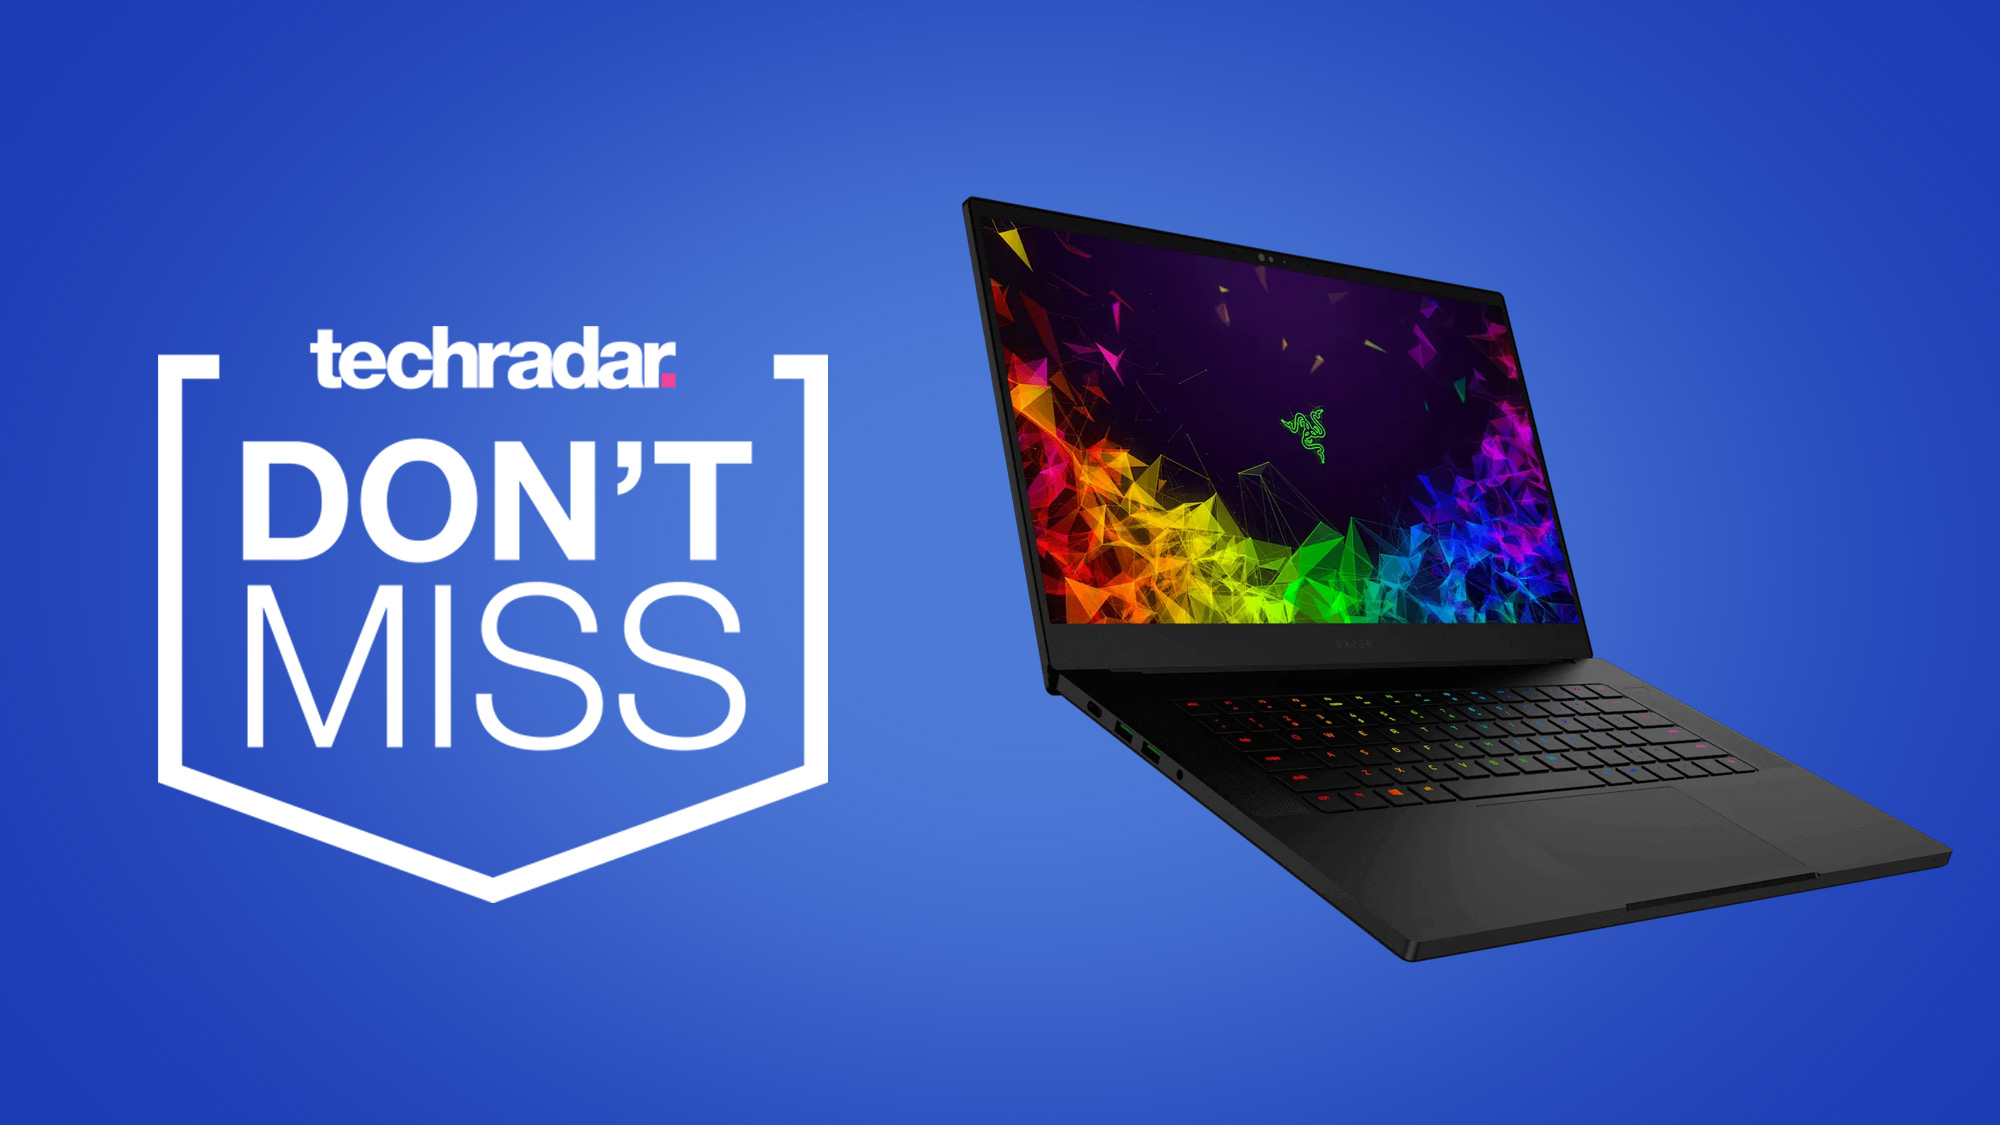 Save up to $300 with these Razer Blade gaming laptop deals thumbnail